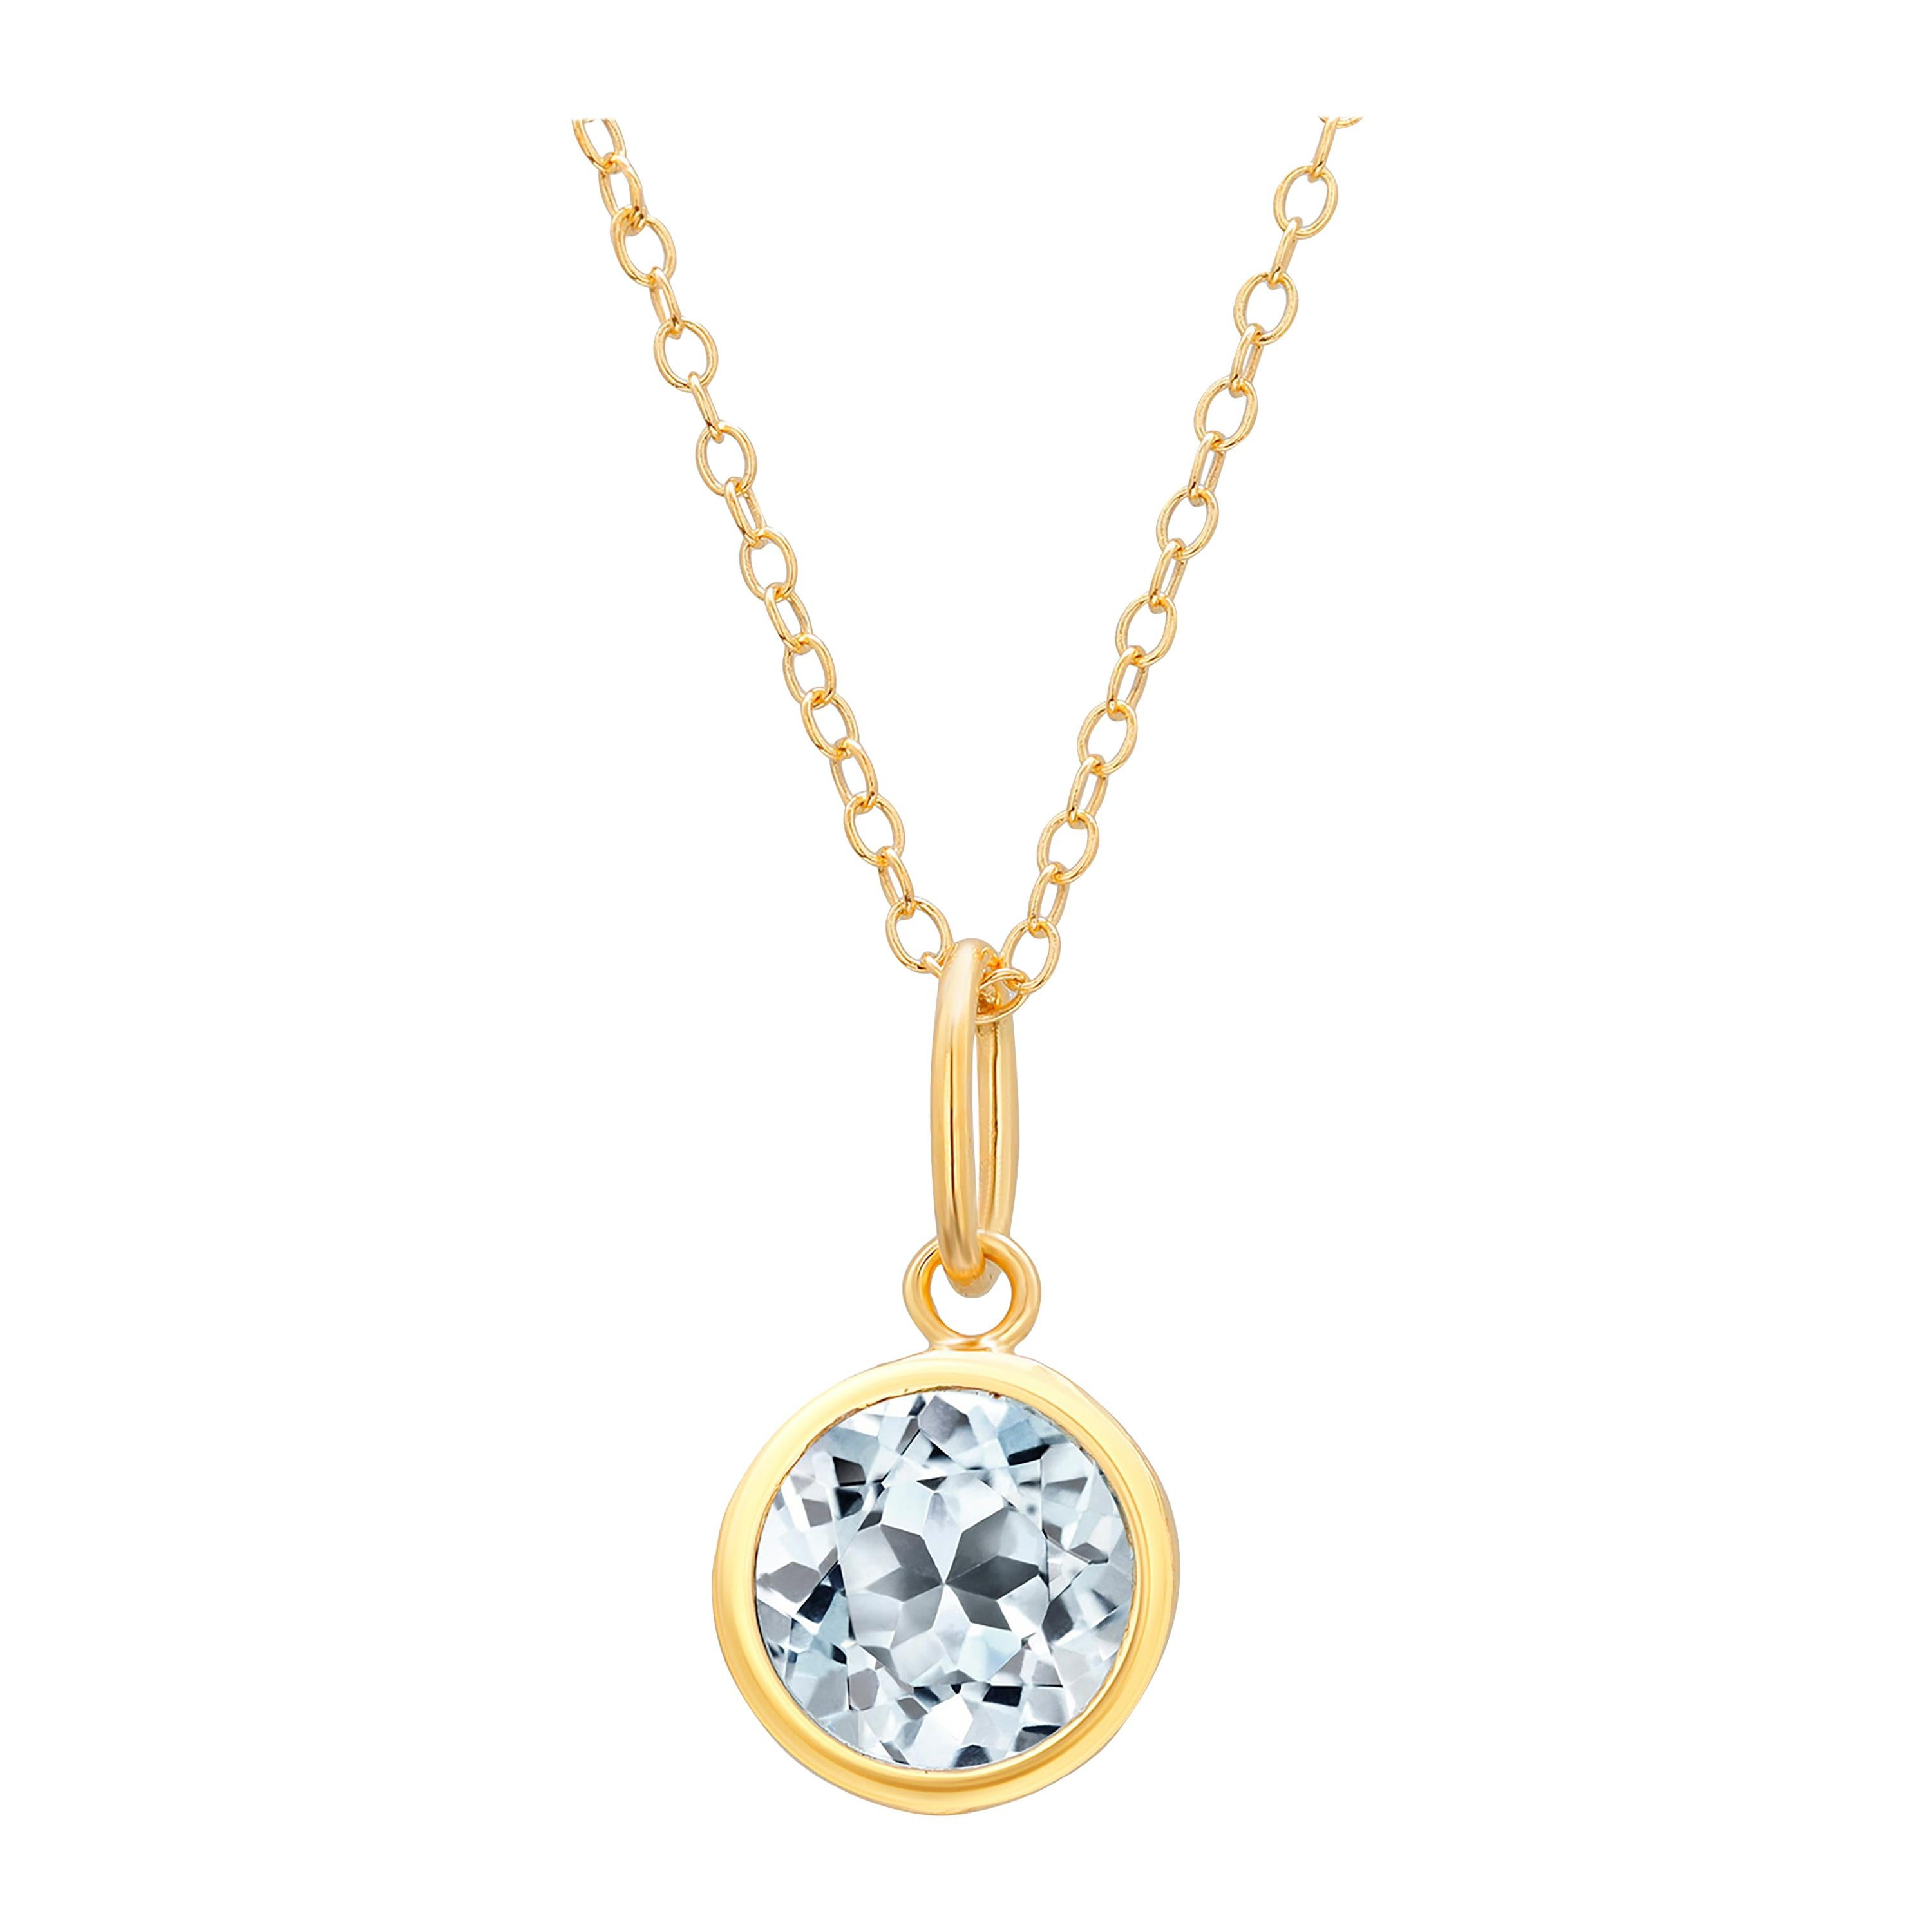 Round Blue Topaz Bezel Set Silver Pendant Necklace Yellow Gold-Plated